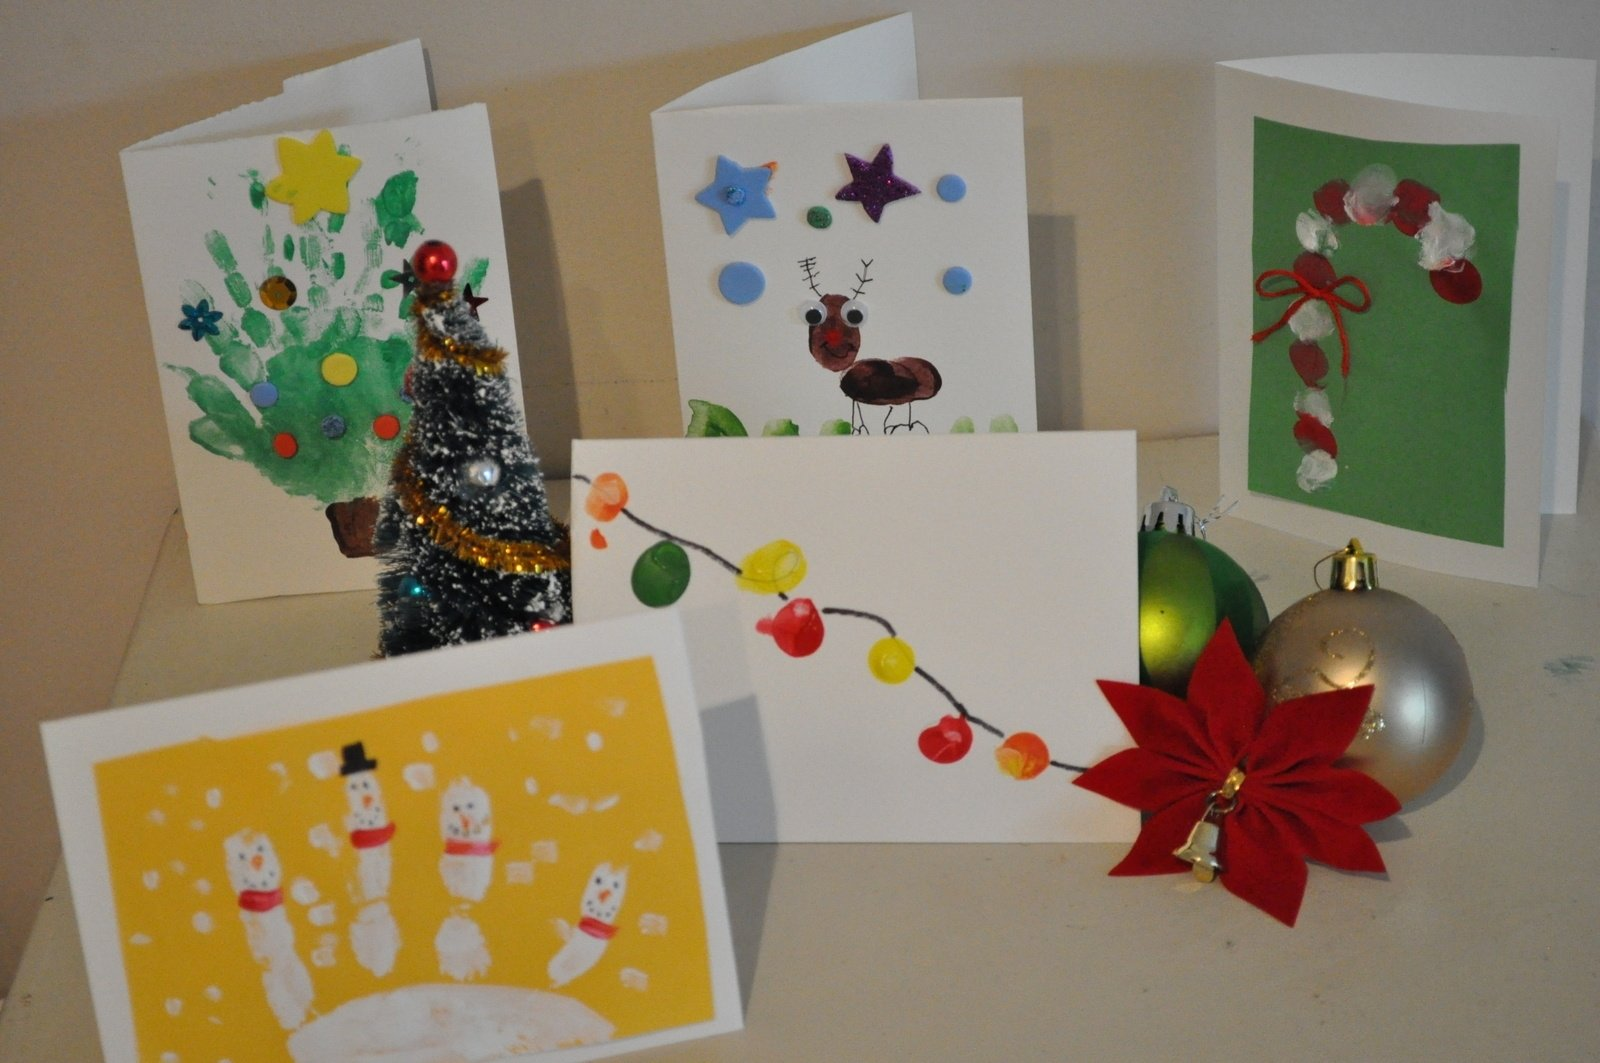 10 Fashionable Christmas Card Picture Ideas Kids homemade christmas card ideas to do with kids e280a2 brisbane kids 9 2020